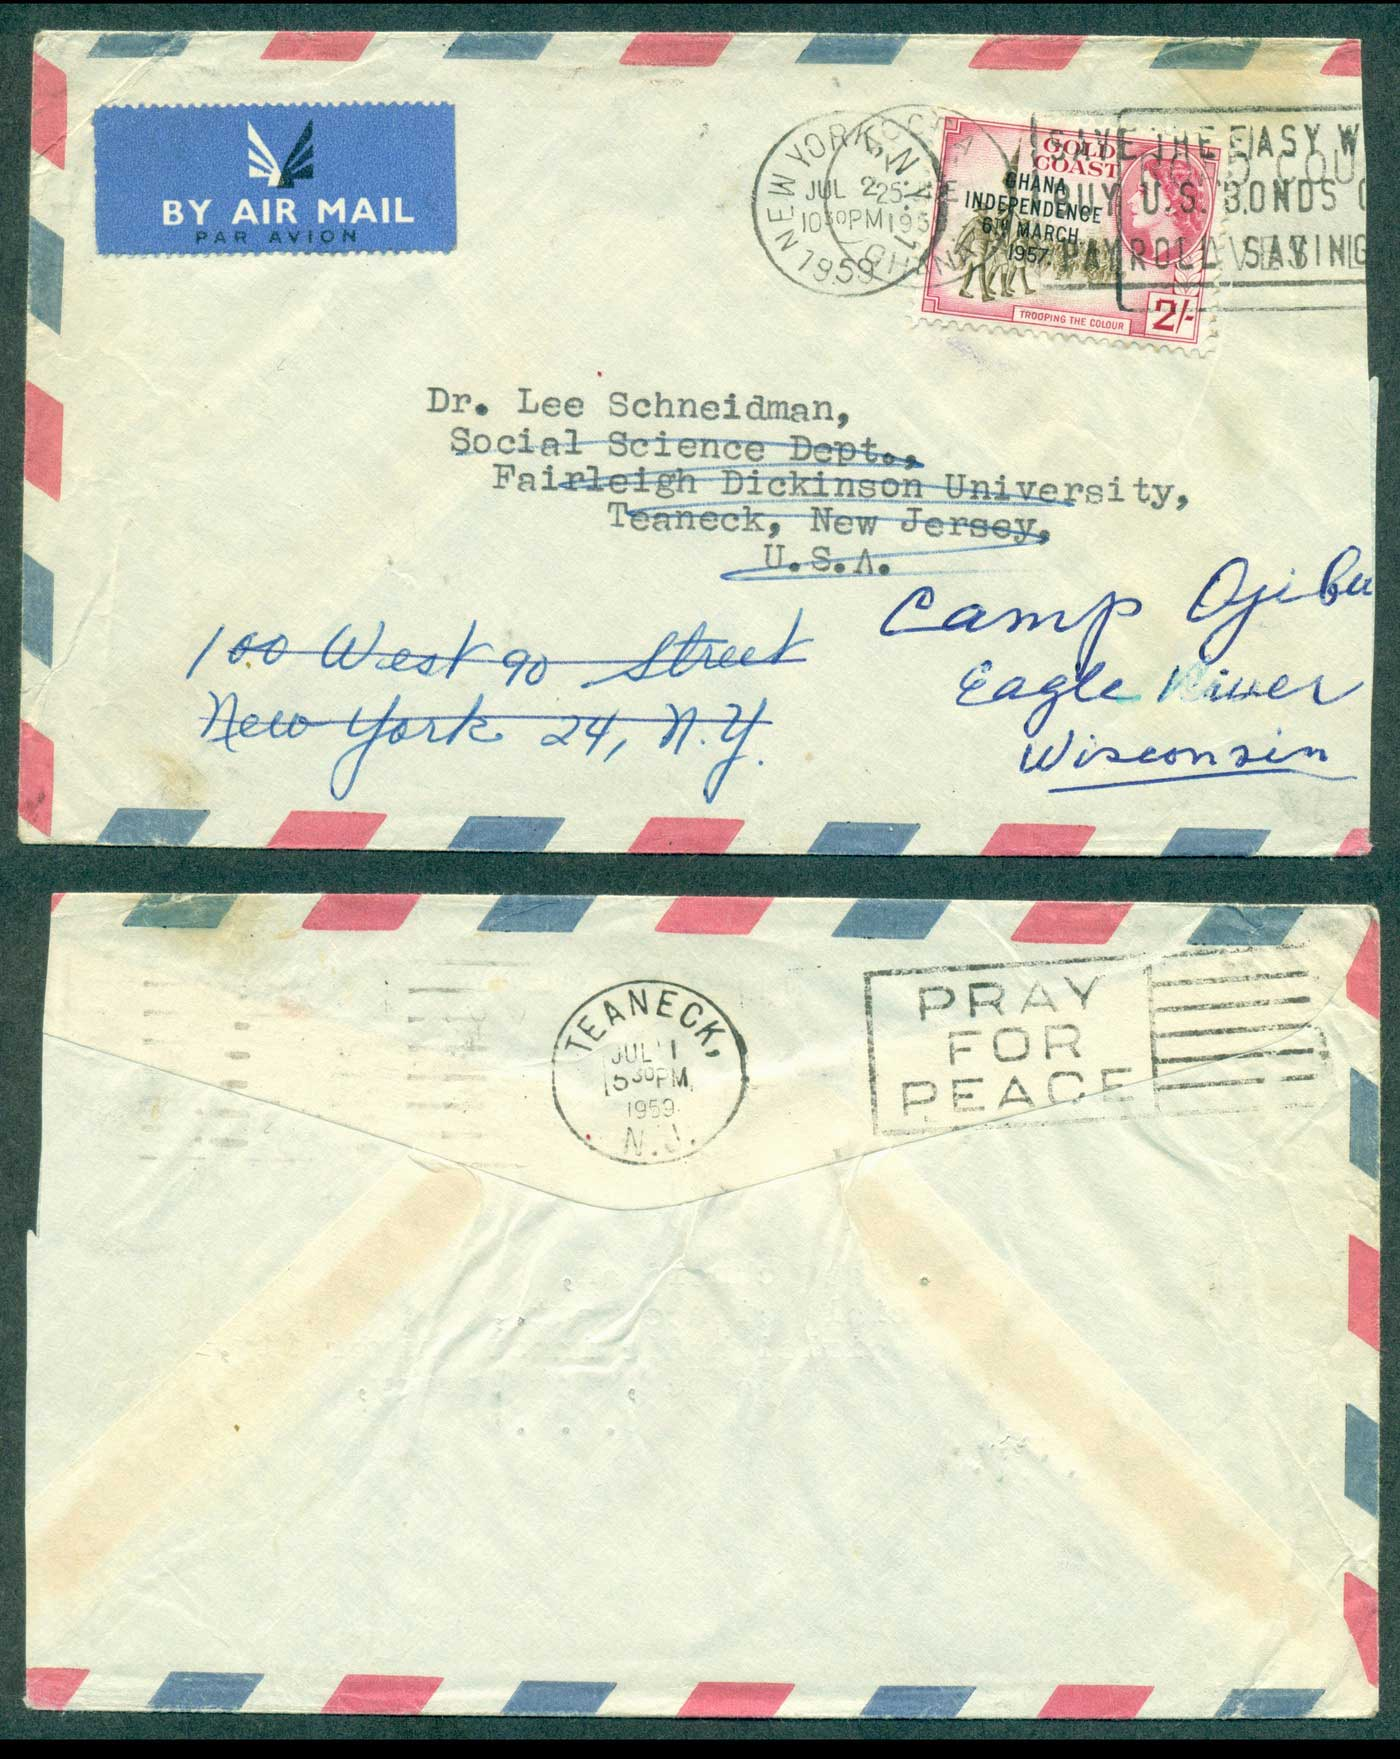 Ghana 1959 2/- Independence Opt on Air Mail cover to Wisconsin, redirected, slightly reduced at right